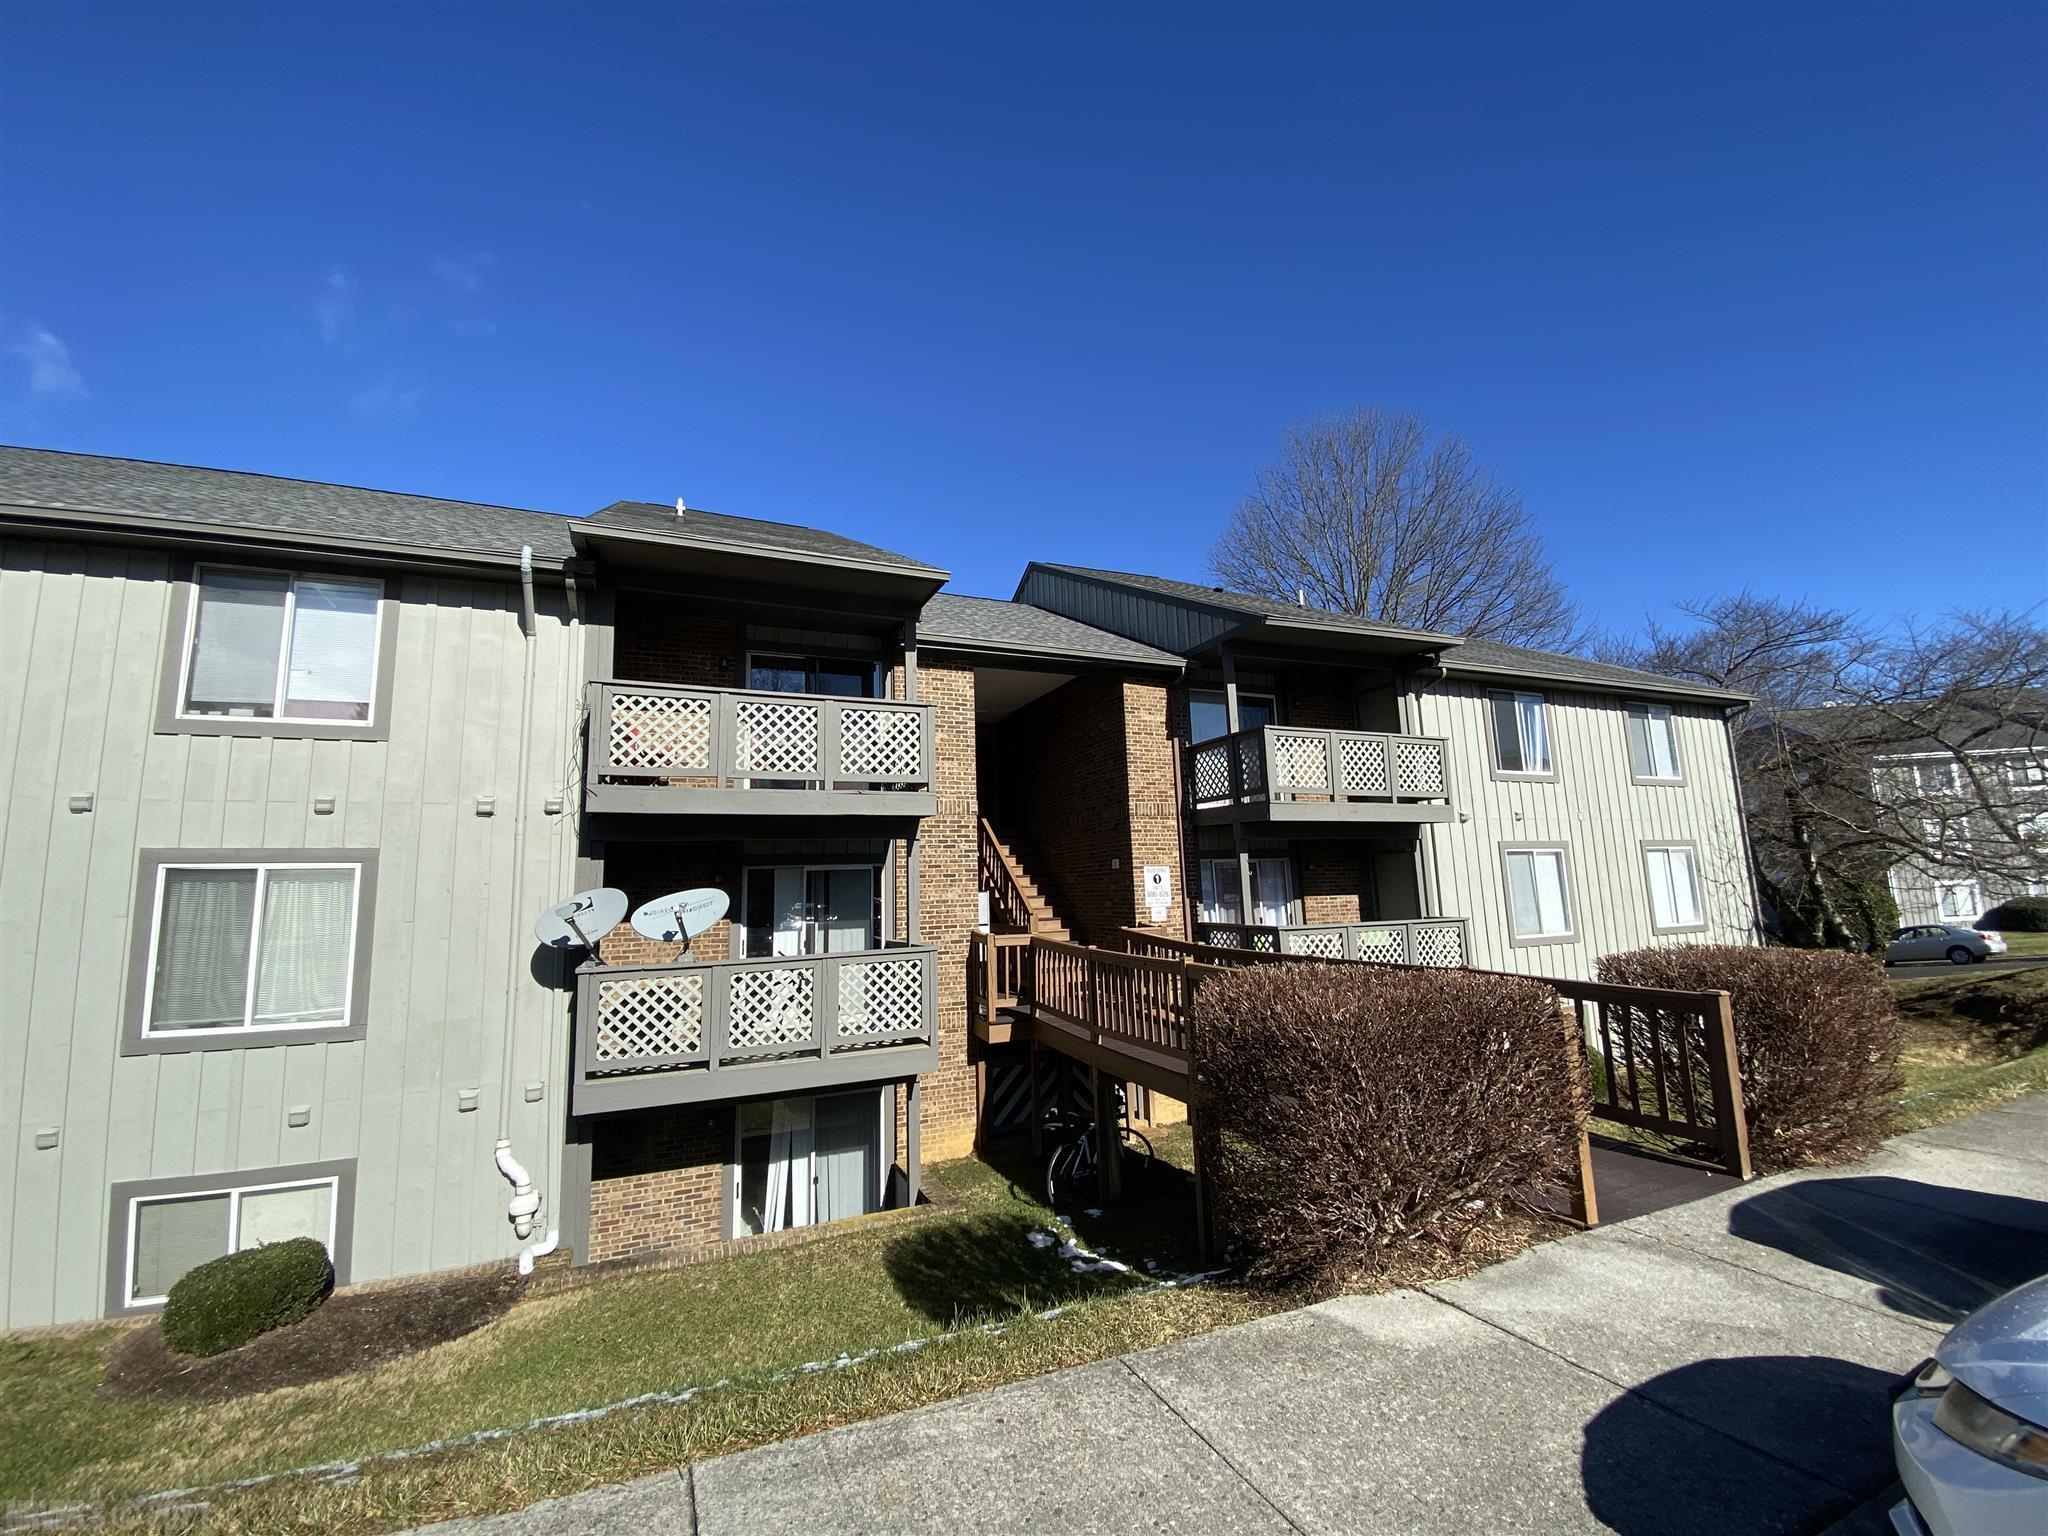 University Place condo! This is a first floor unit located on Claytor Square with three bedrooms and two bathrooms! Kitchen and living space is open to each other with a breakfast eat-in area. Conveniently located behind Kroger and within walking distance to the Virginia Tech Campus, over a dozen restaurants, the University Mall and surrounded by three BT bus stops.